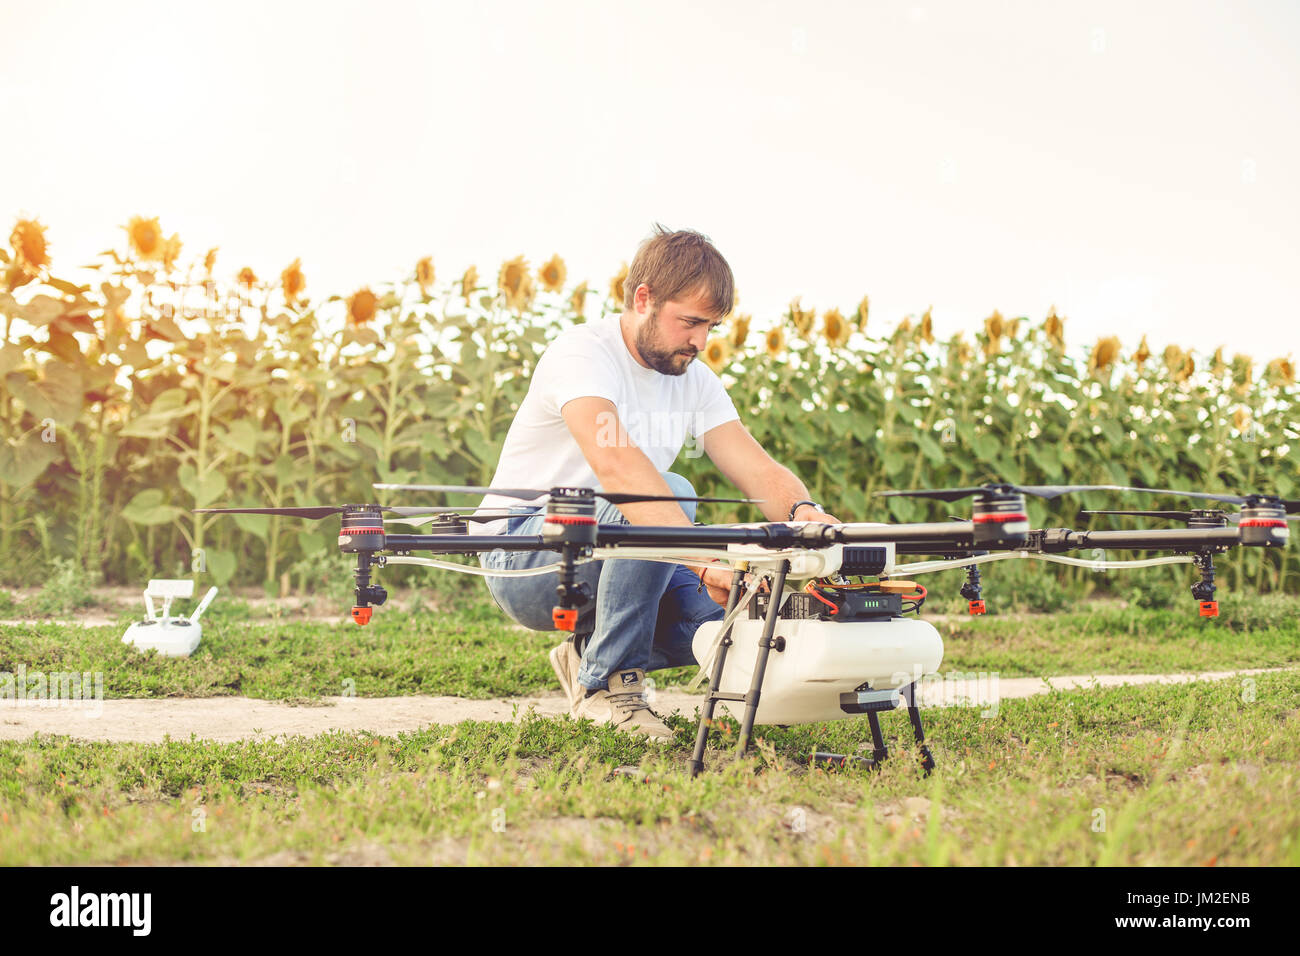 Preparing a drone for take off despite the sunset. - Stock Image